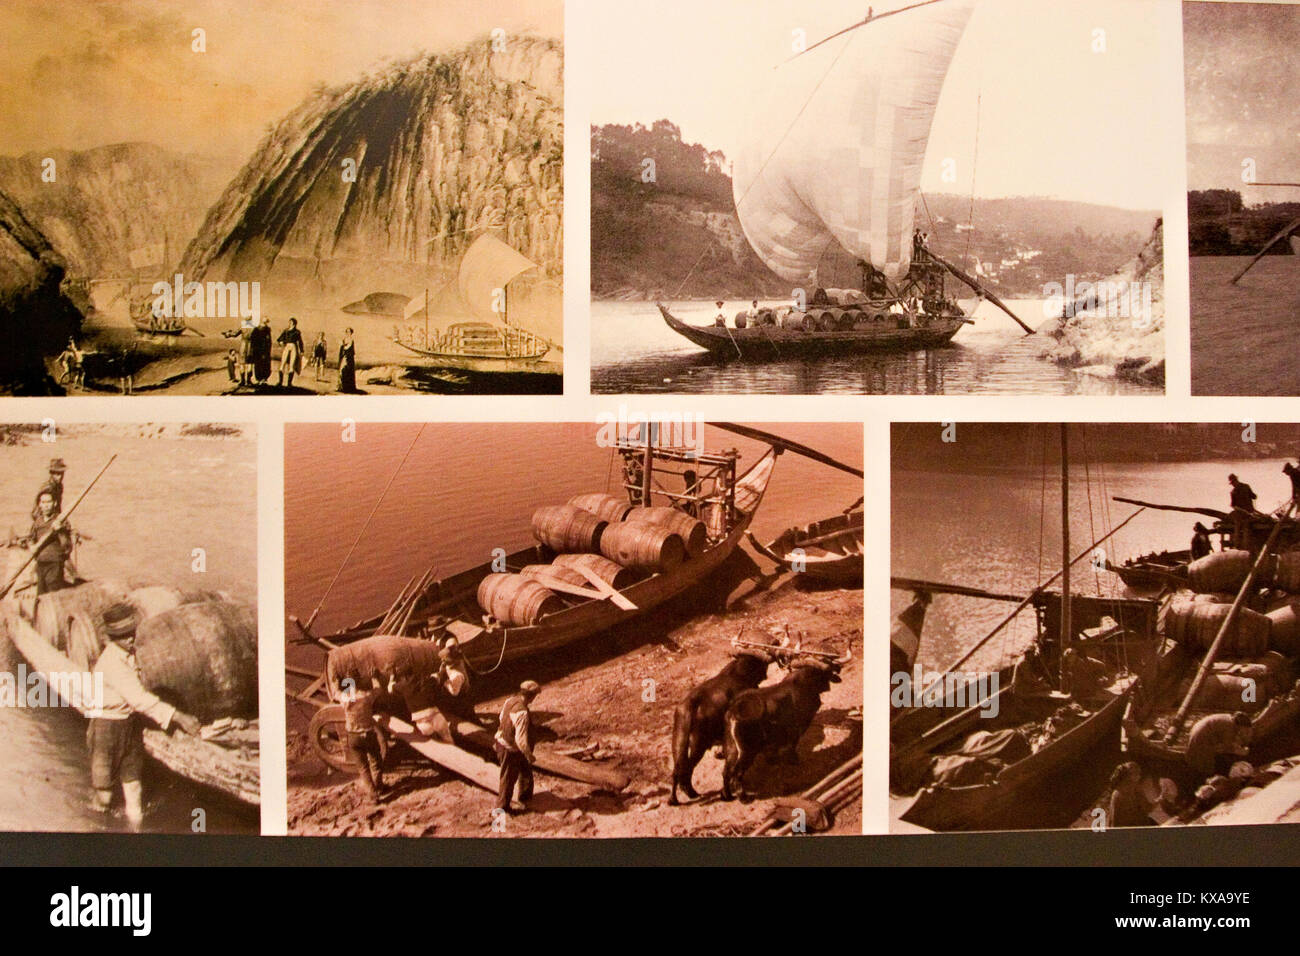 Old postcards of port production and transport, Porto, Portugal - Stock Image